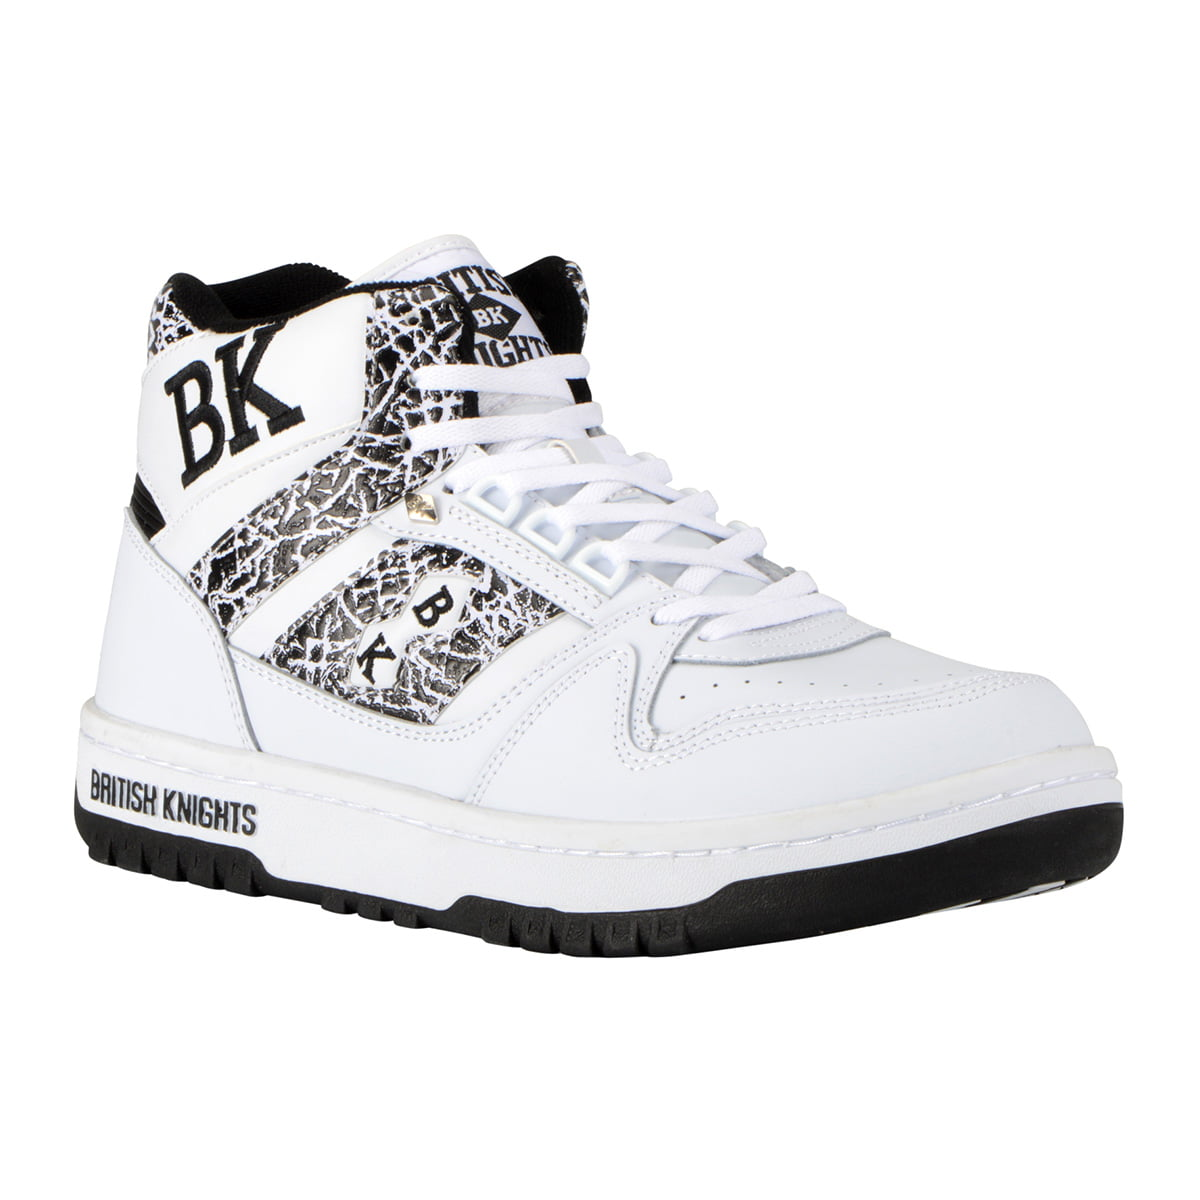 British Knights Schuhe. Good Kings Sl Blackwhite With